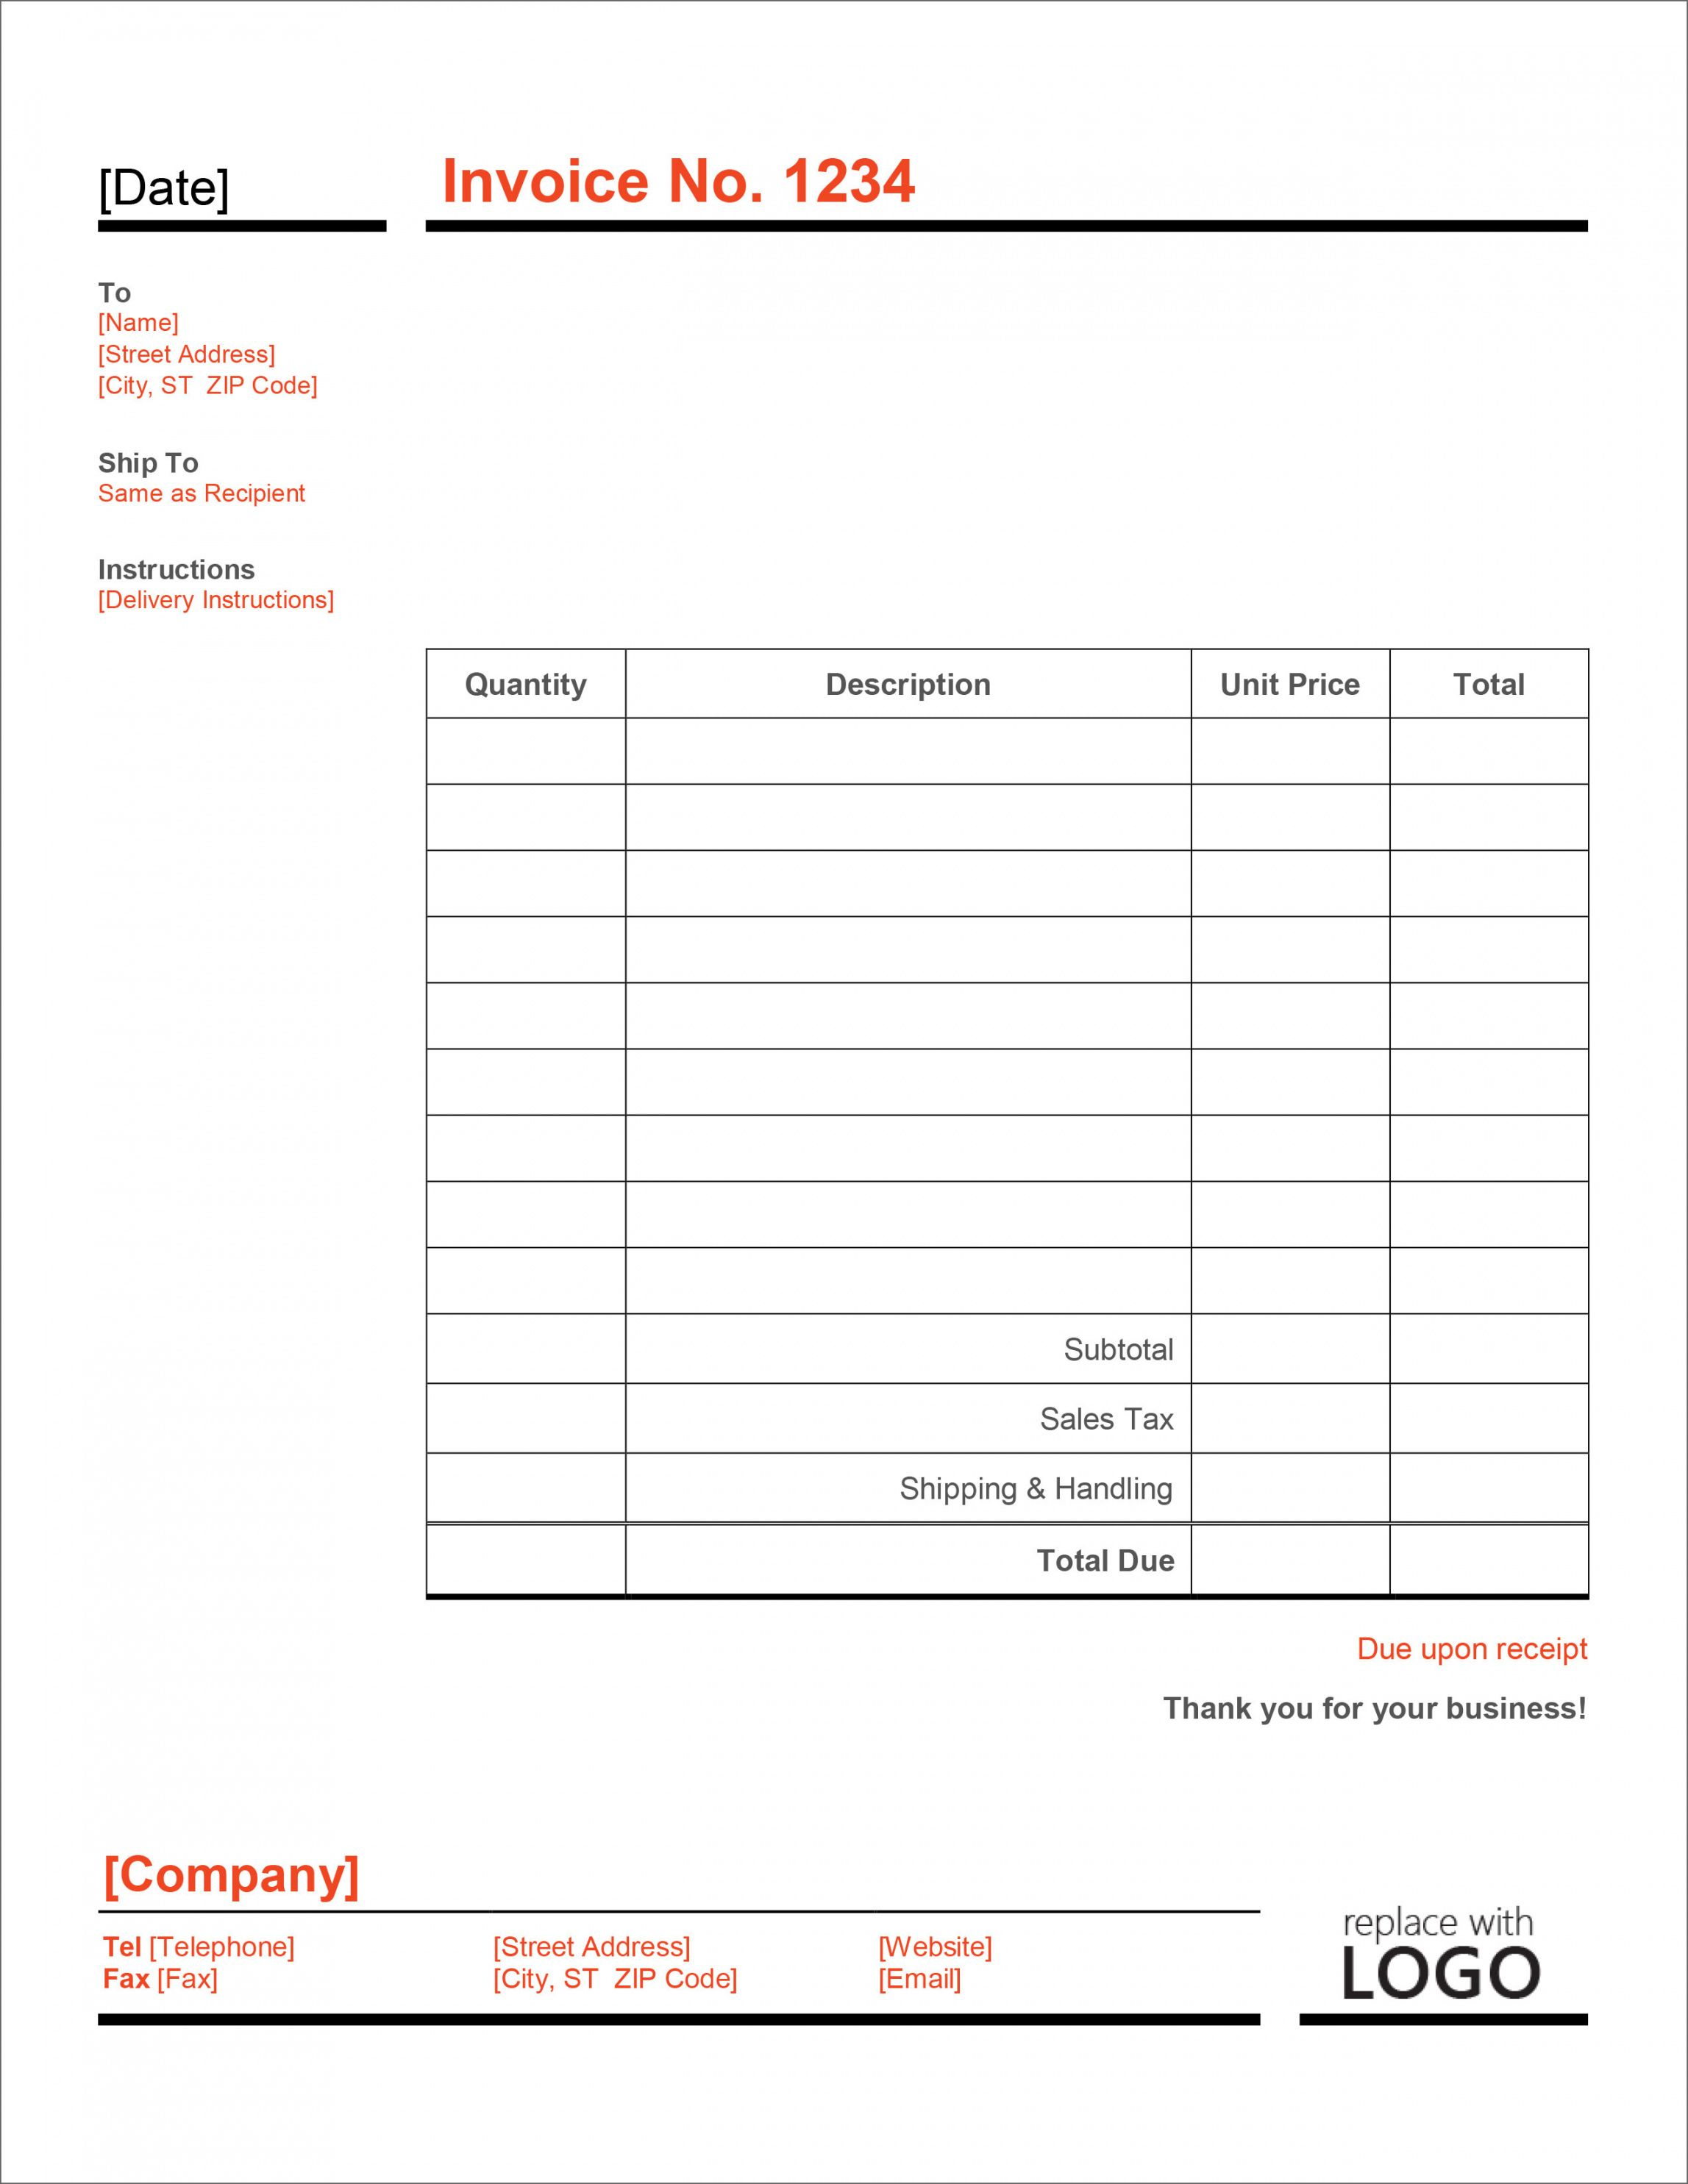 Get Our Sample of Small Sales Receipt Template Receipt